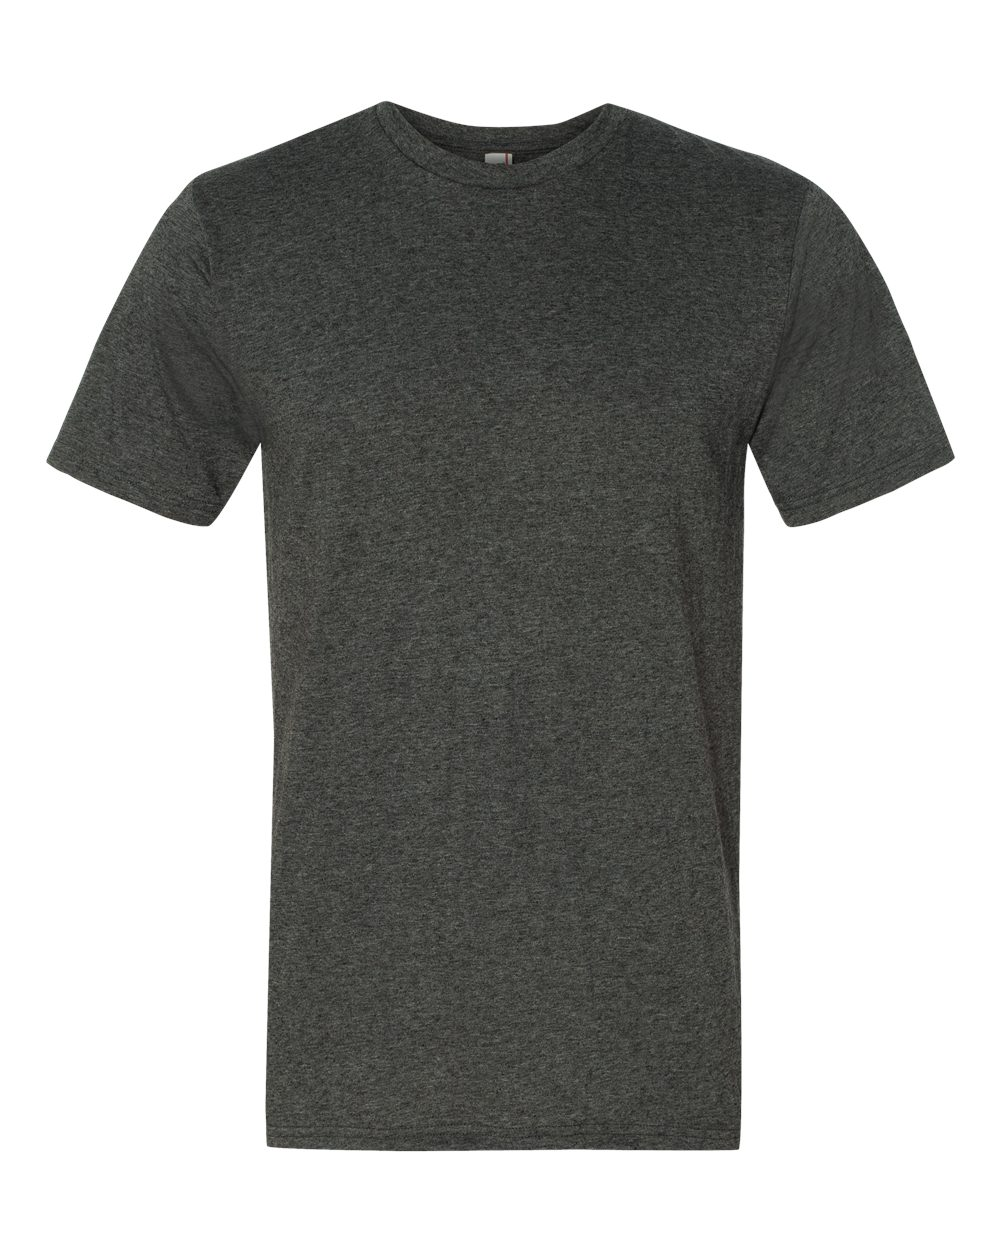 click to view Heather Dark Grey